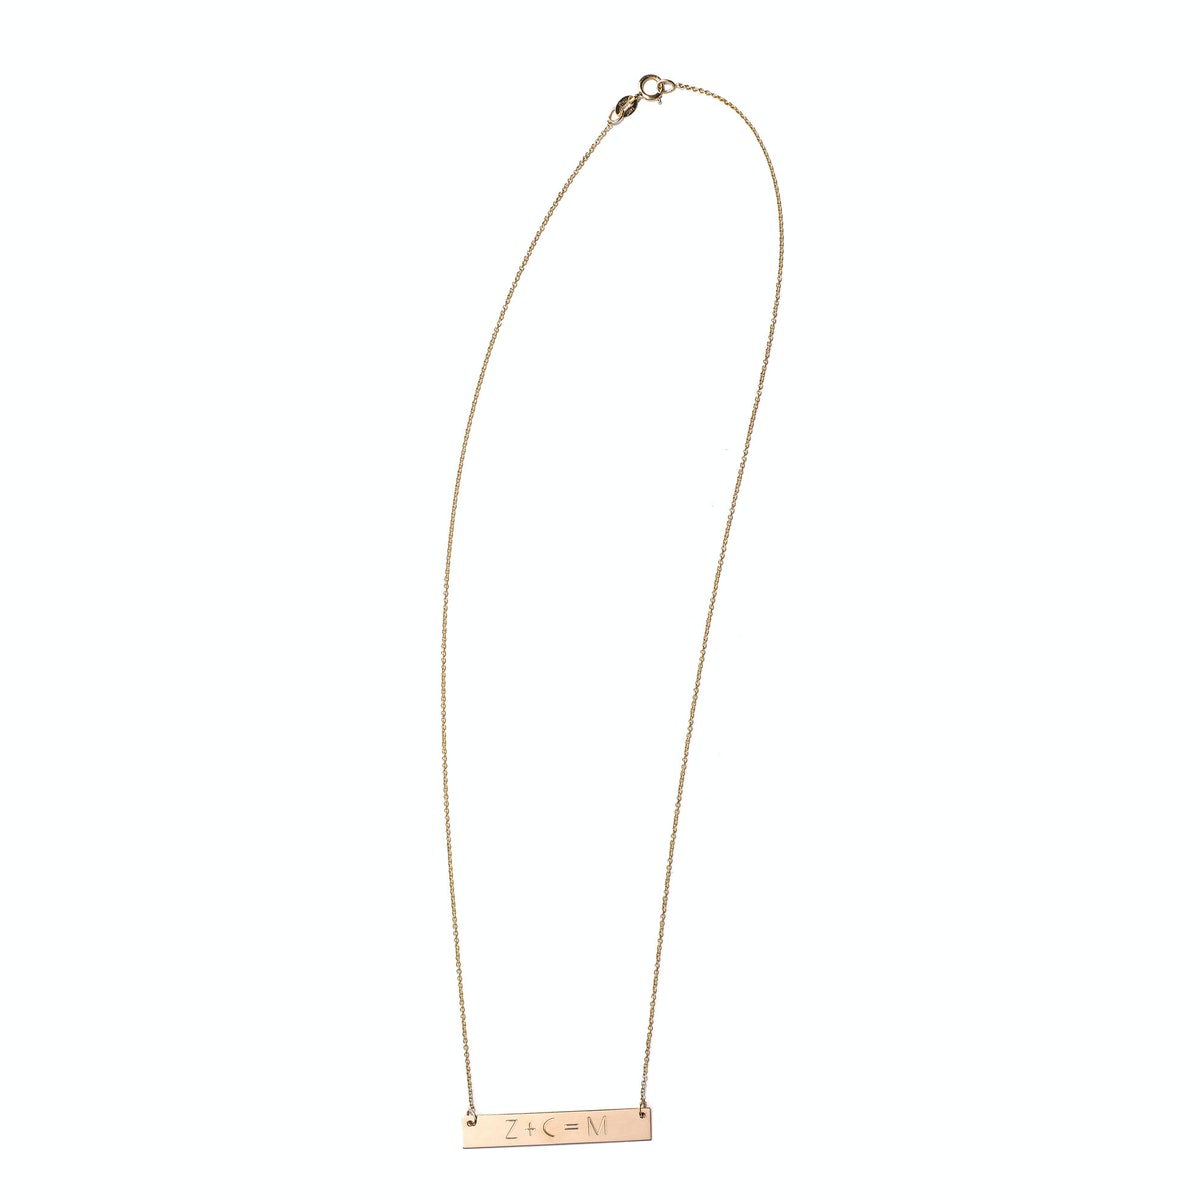 Carrie Hoffman Equation Necklace